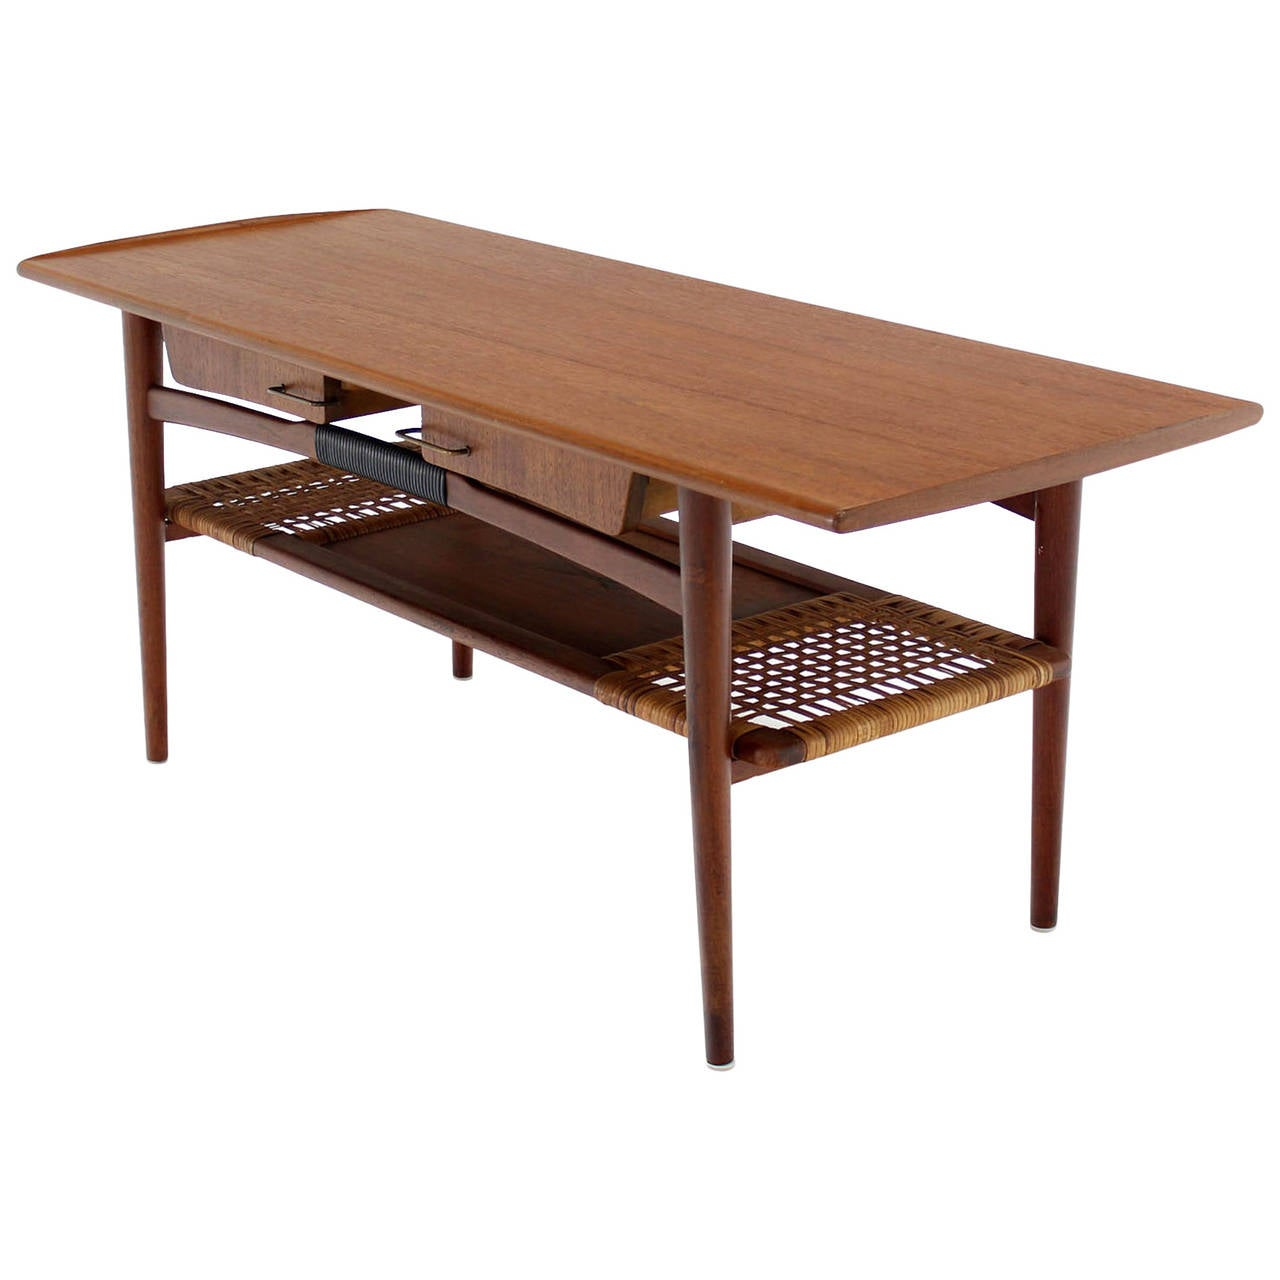 Danish Modern Teak Coffee Table Cane Shelf Rolled Edges 4 Storage Drawers For Sale At 1stdibs